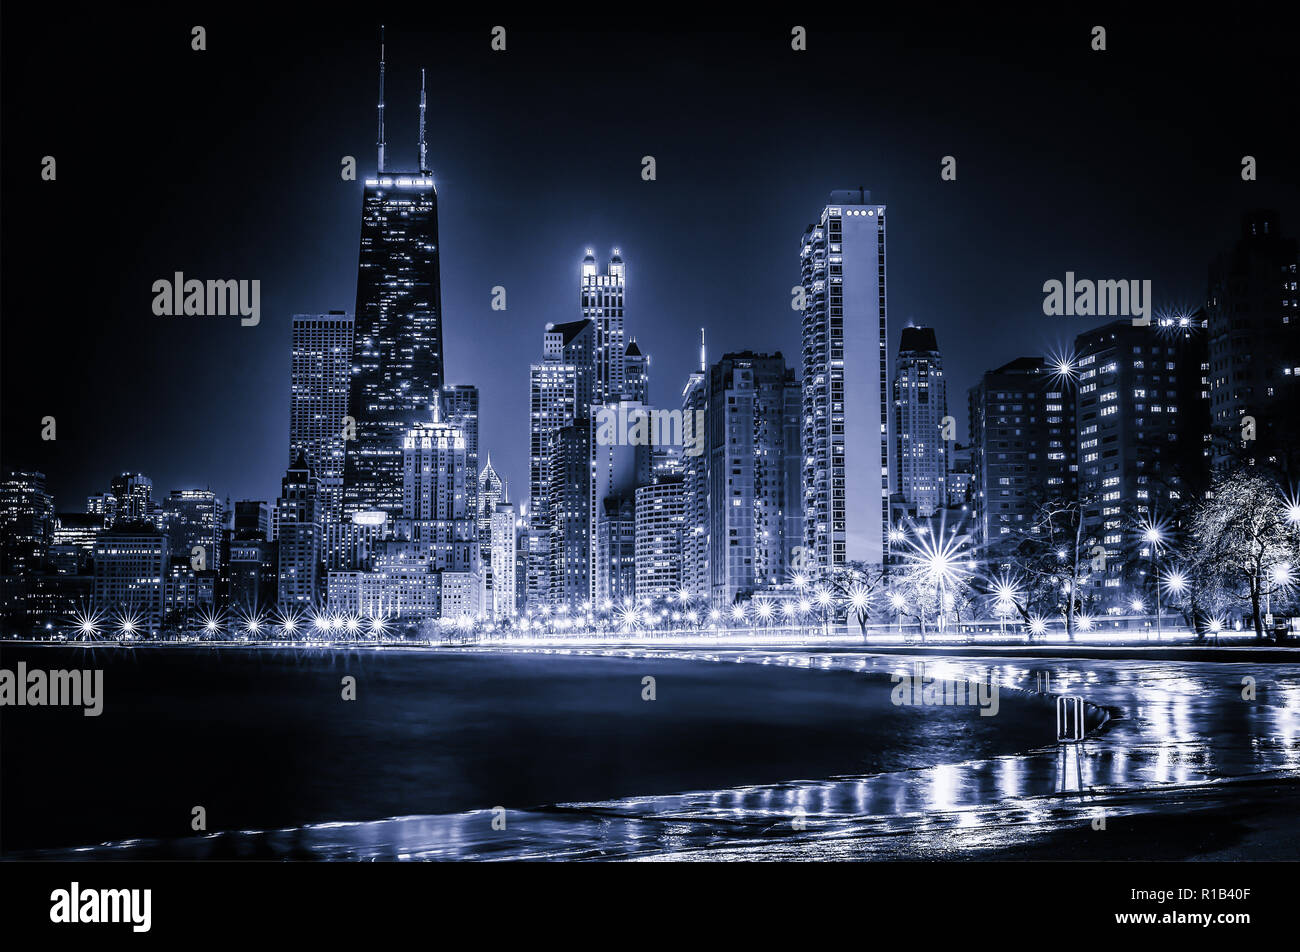 Glowing Chicago Blues Skyline. Iconic view of the Windy City's vibrant downtown from Lakefront Trail at North Avenue Beach along the Gold Coast. - Stock Image